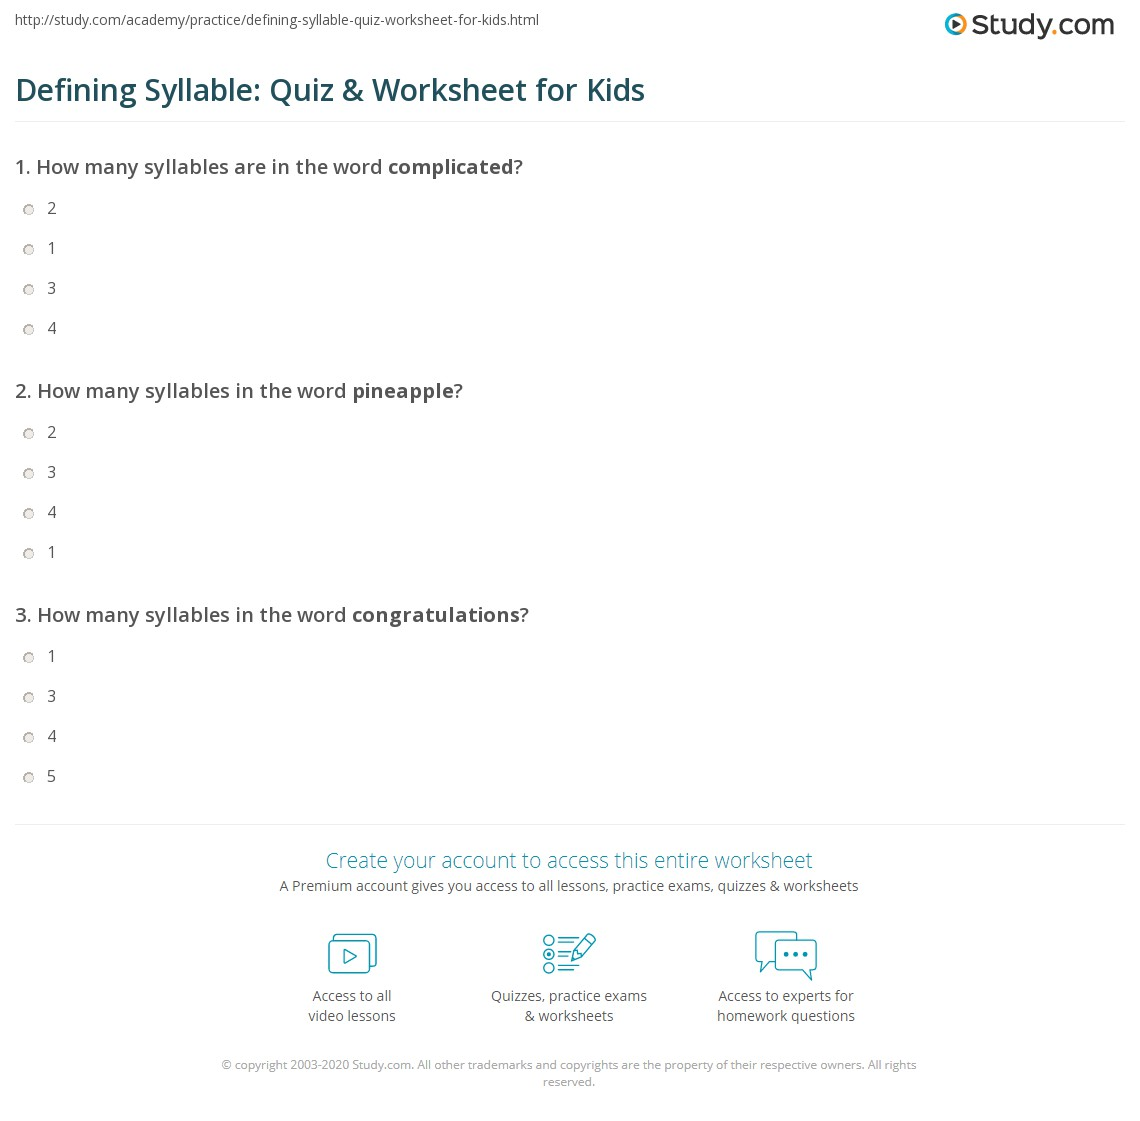 Defining Syllable: Quiz & Worksheet for Kids | Study.com